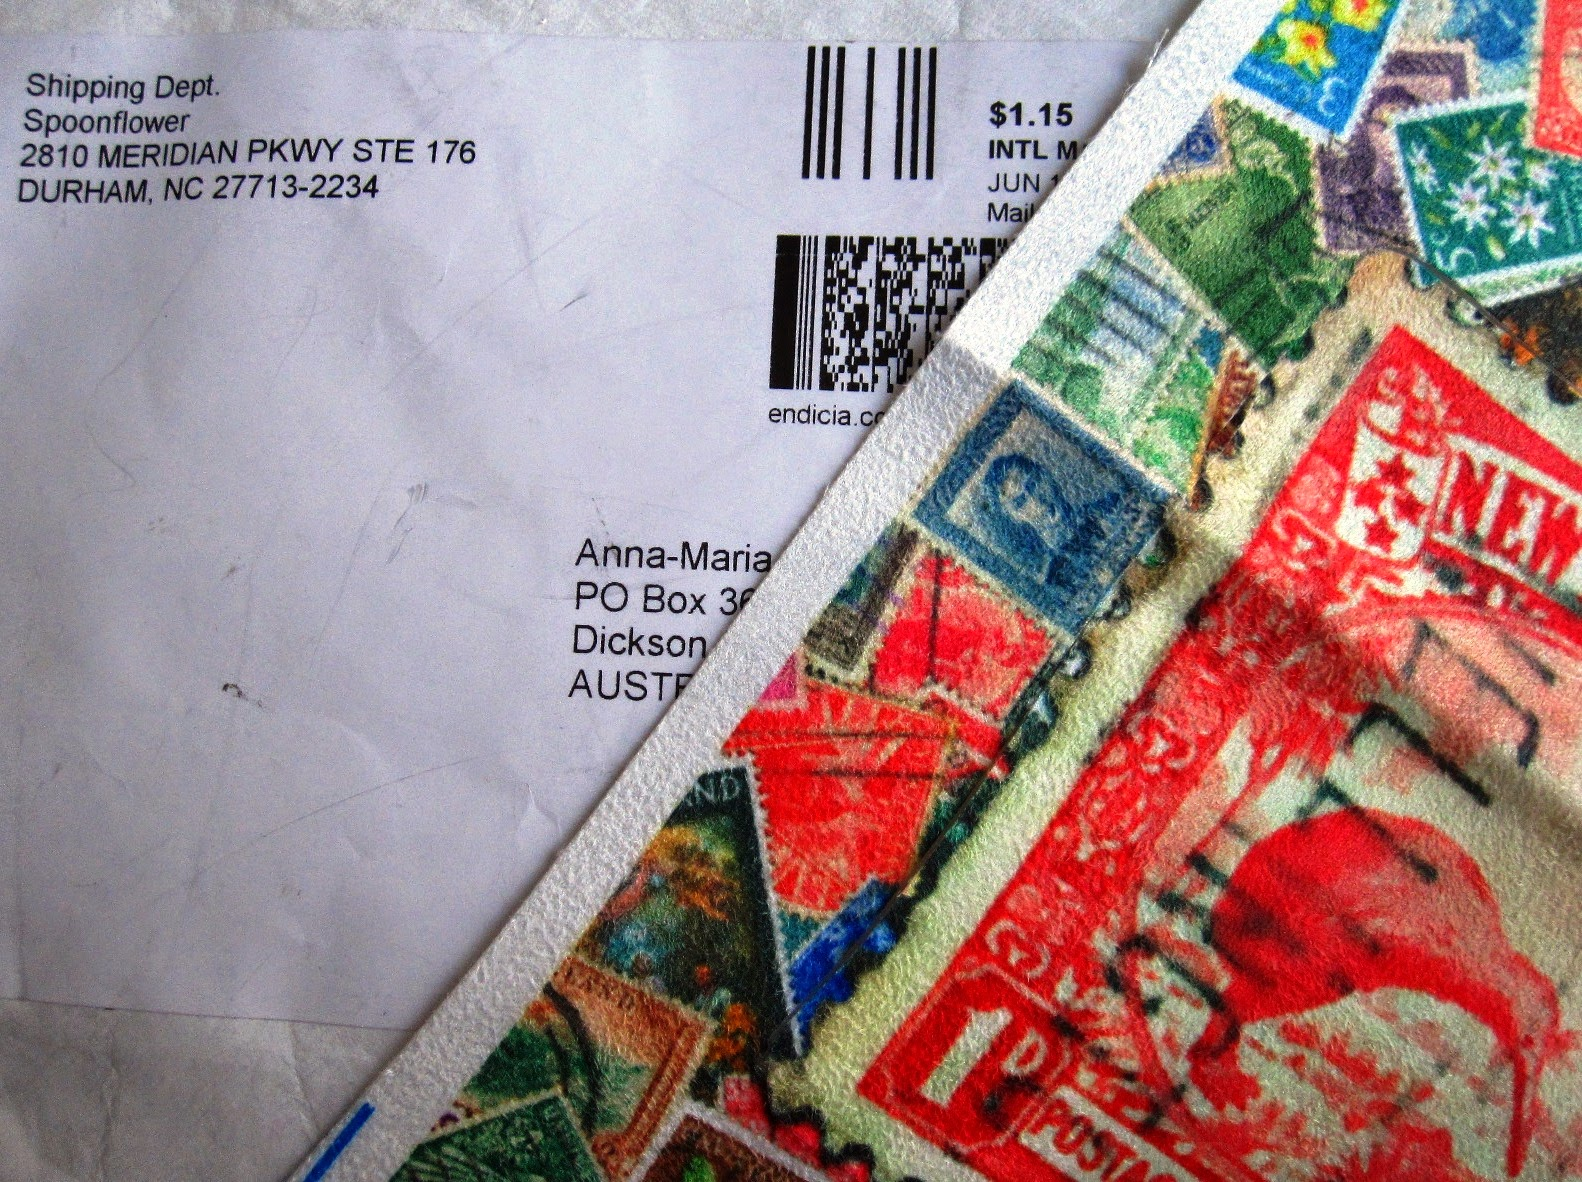 Mailing envelope from fabric-printing company Spoonflower with a sample of their faux suede fabric printed with New Zealand stamps.